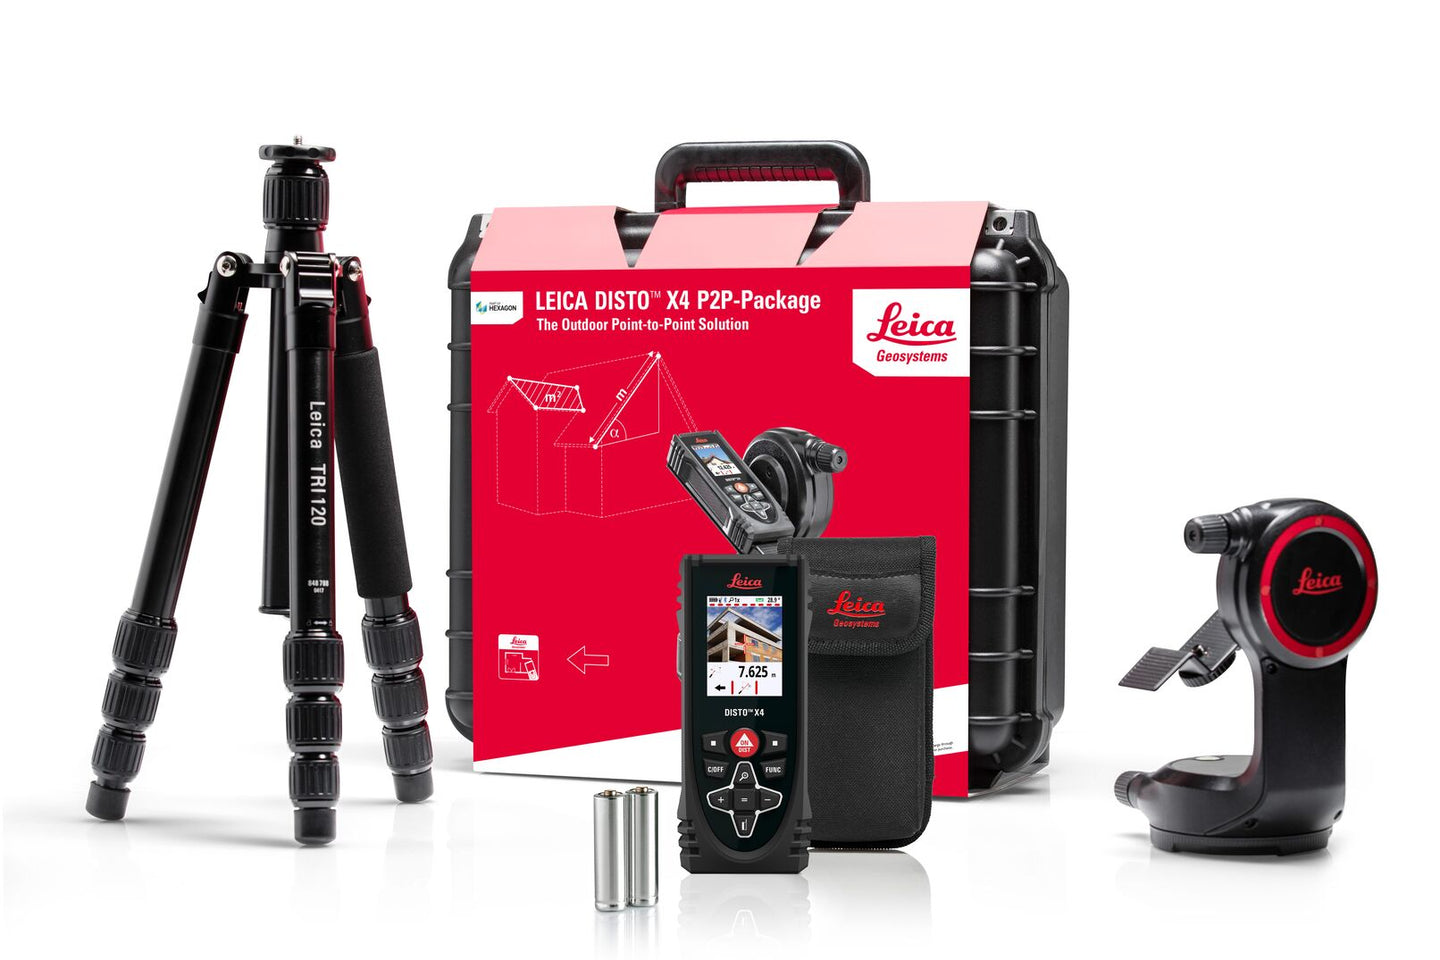 Leica DISTO X4 P2P Package